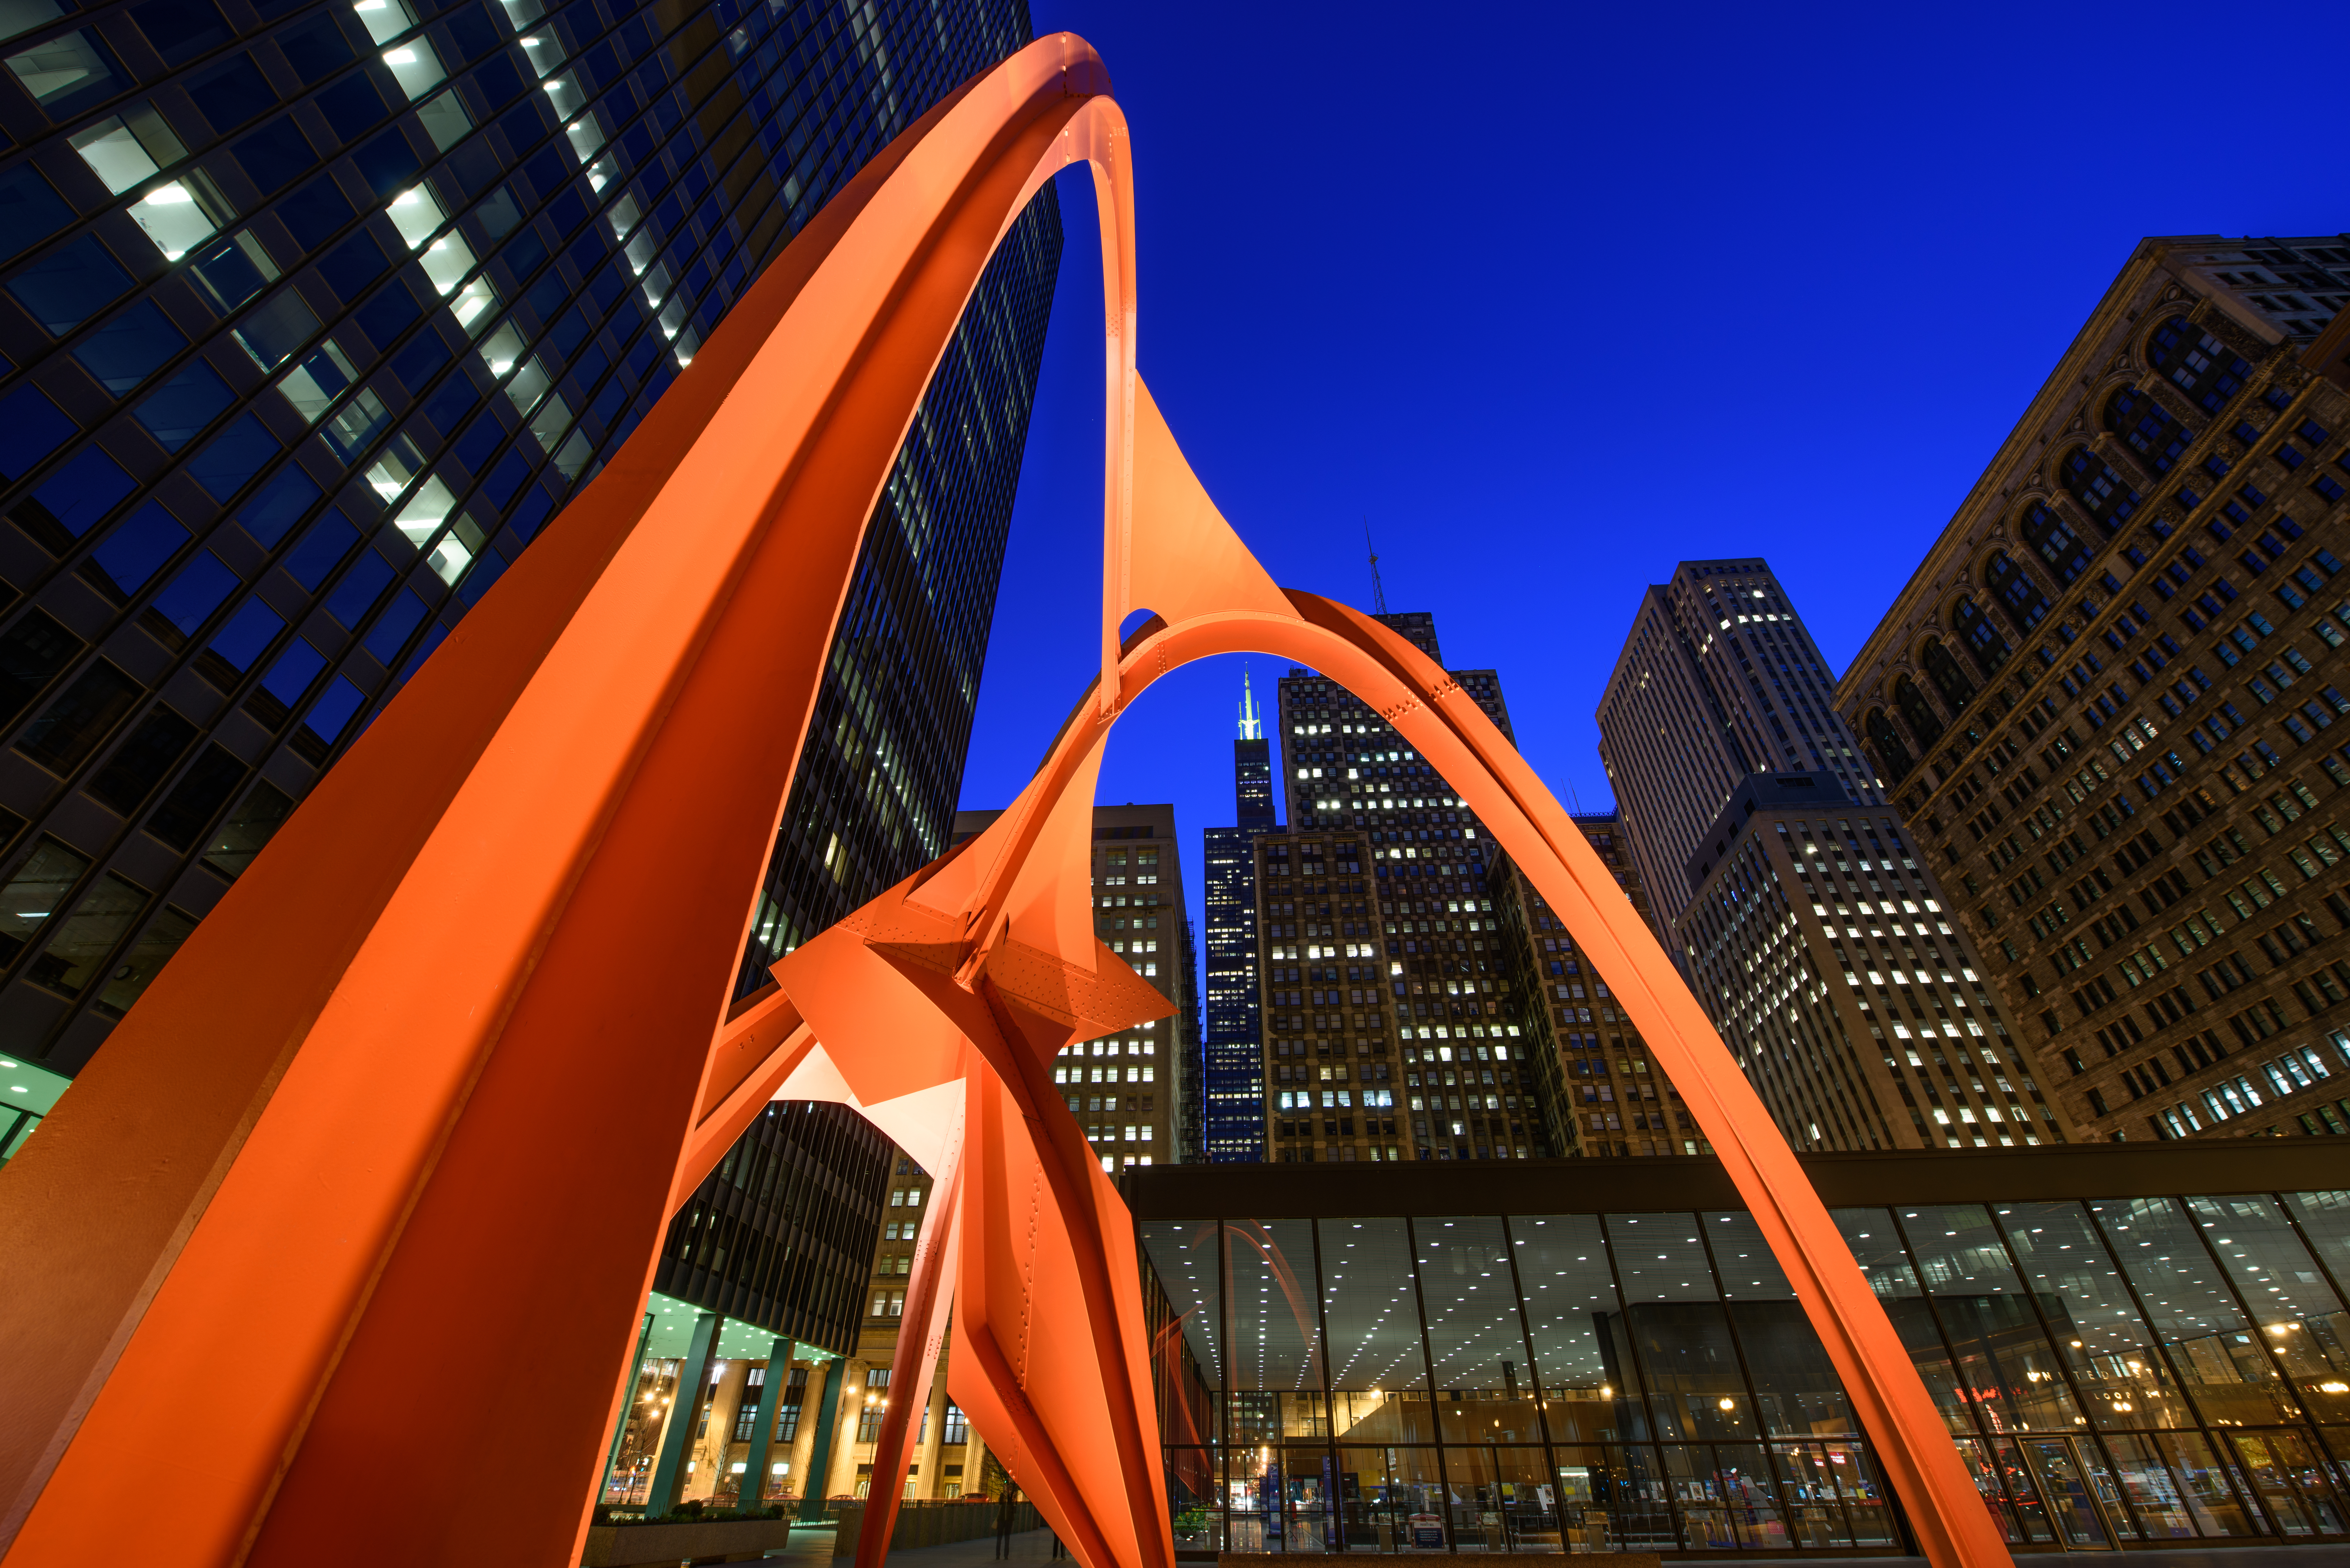 A public work of art in Chicago which is a tall curved orange metal structure near city buildings.